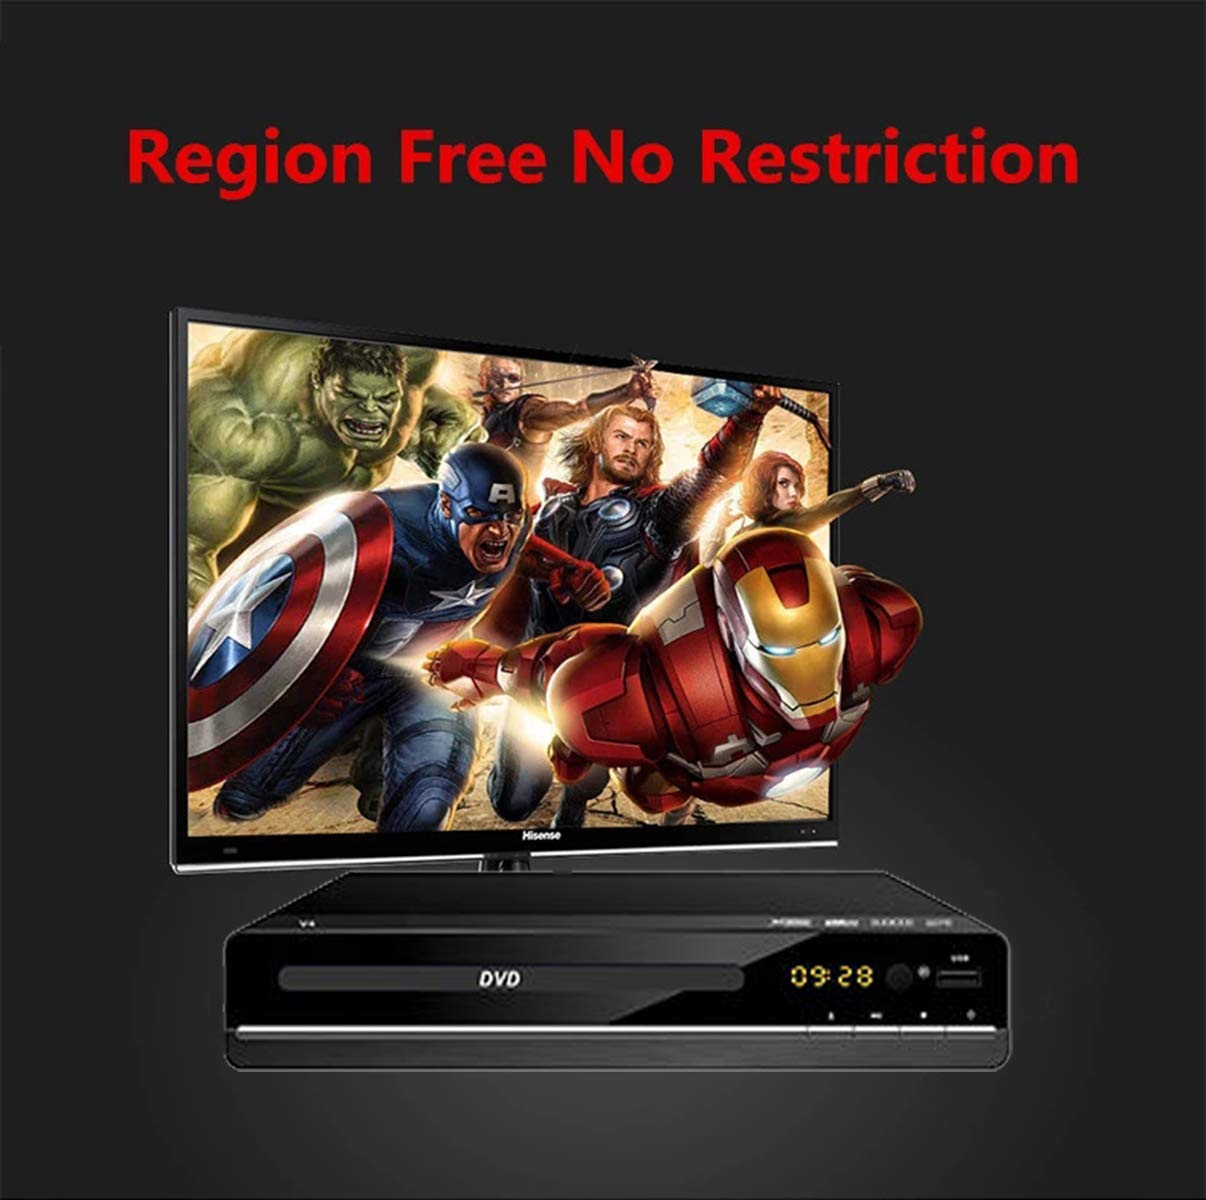 Compact DVD Player, Multi Region DVD Players for TV - Region Free Digital Player Multi- Format playability USB Port, RCA Audio Cable Hook Up, LED Display, Remote Control by Sindave